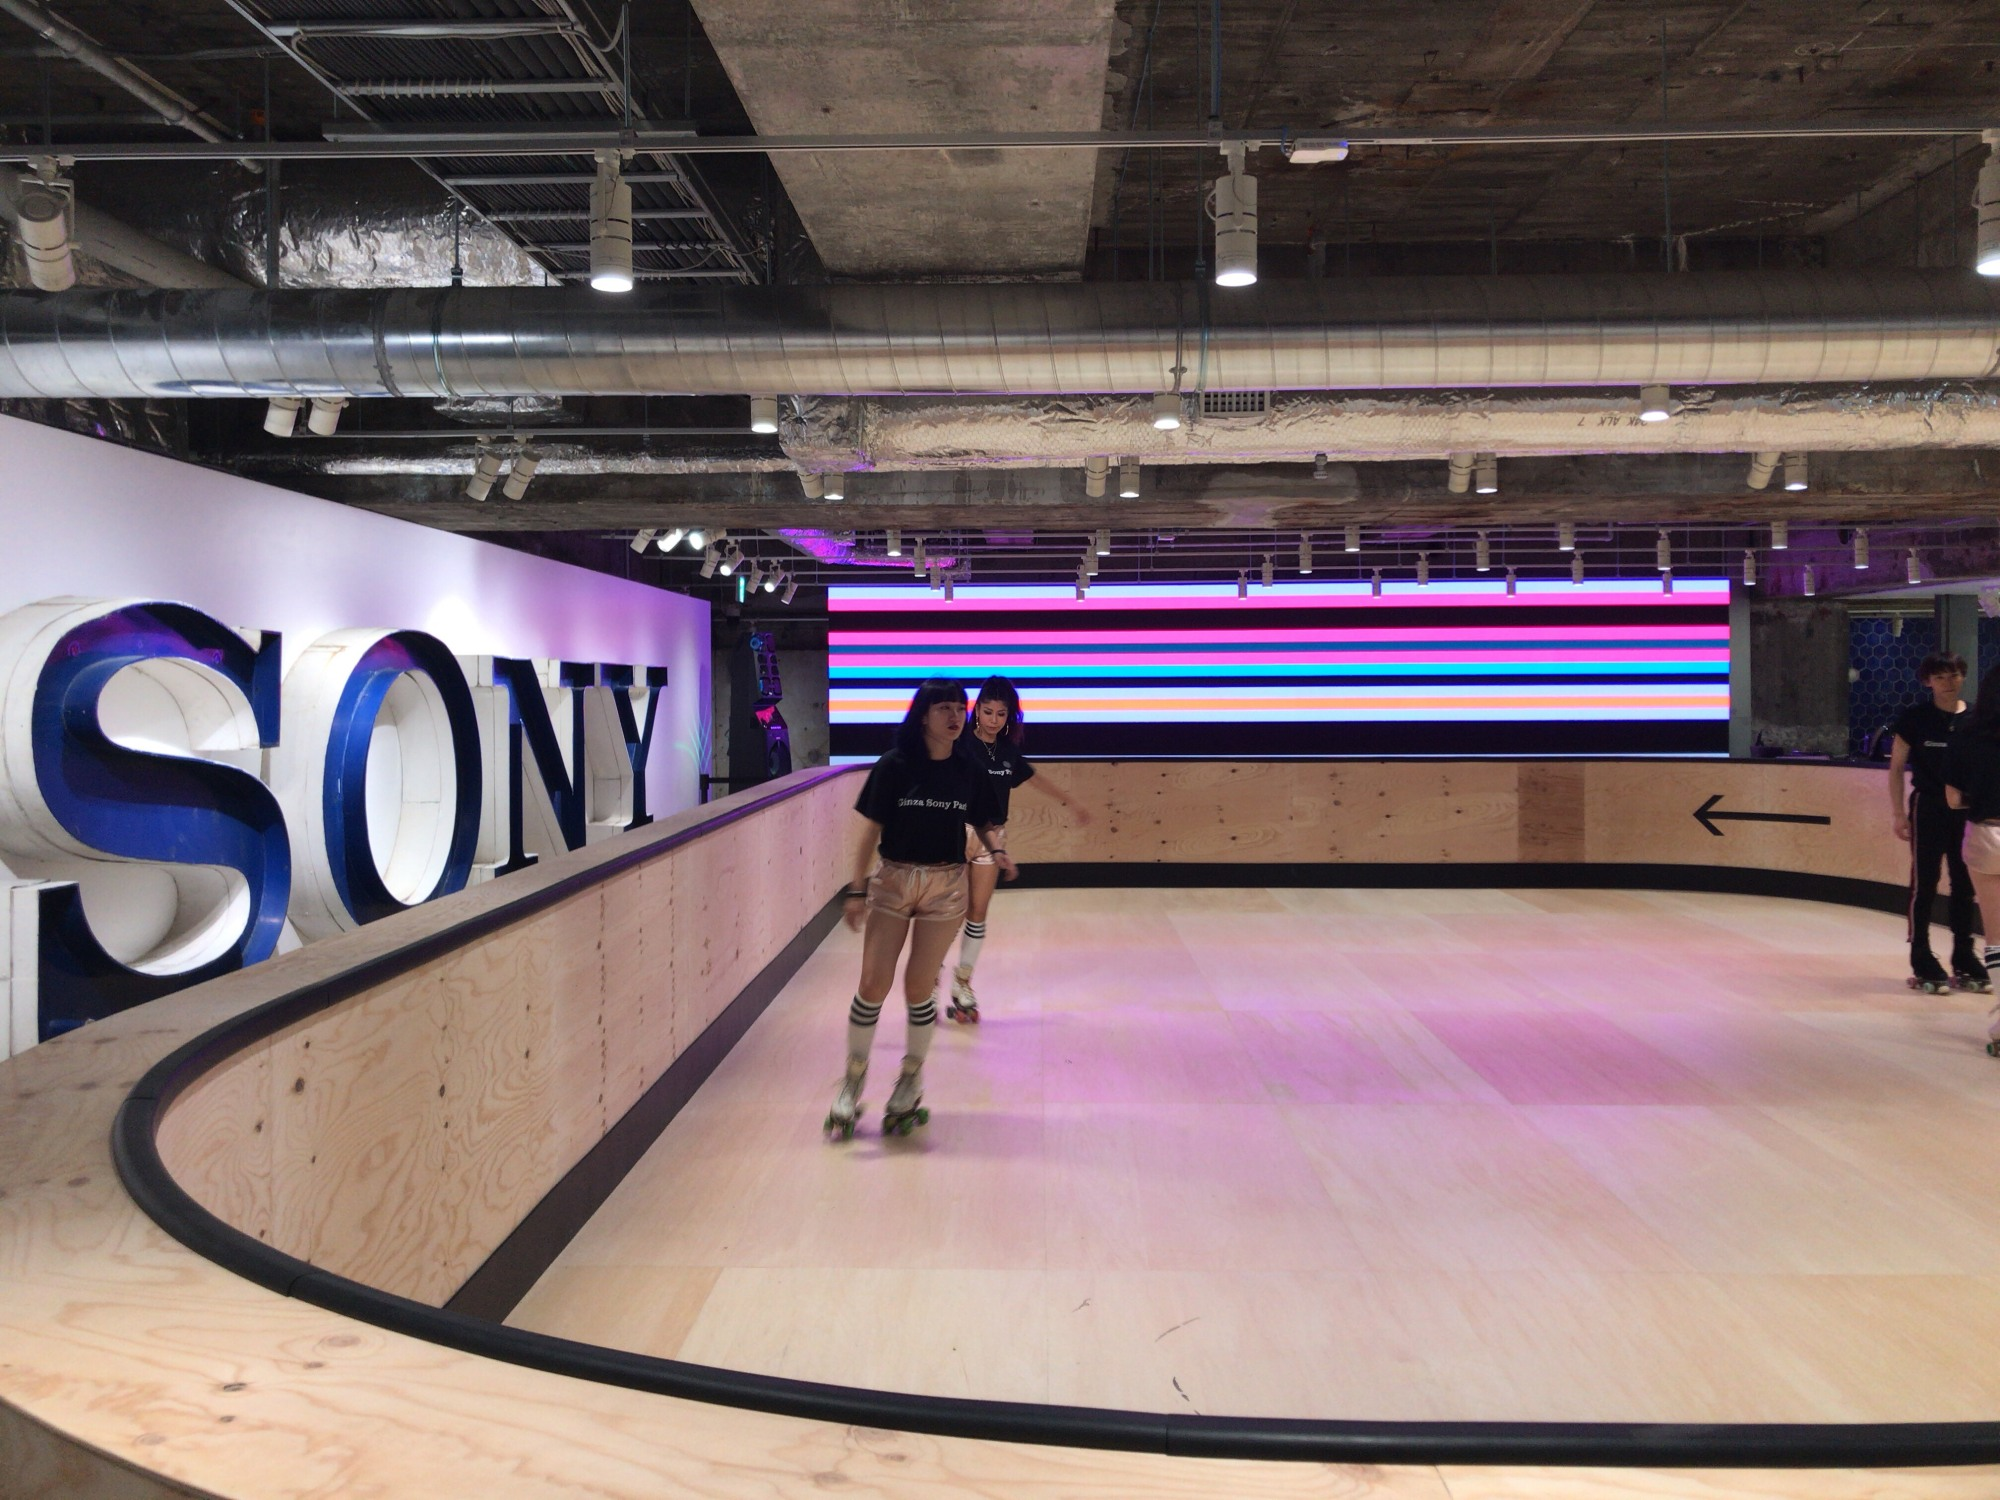 People try the roller skating rink at Ginza Sony Park in Tokyo during a media preview of the facility on Wednesday.   KAZUAKI NAGATA